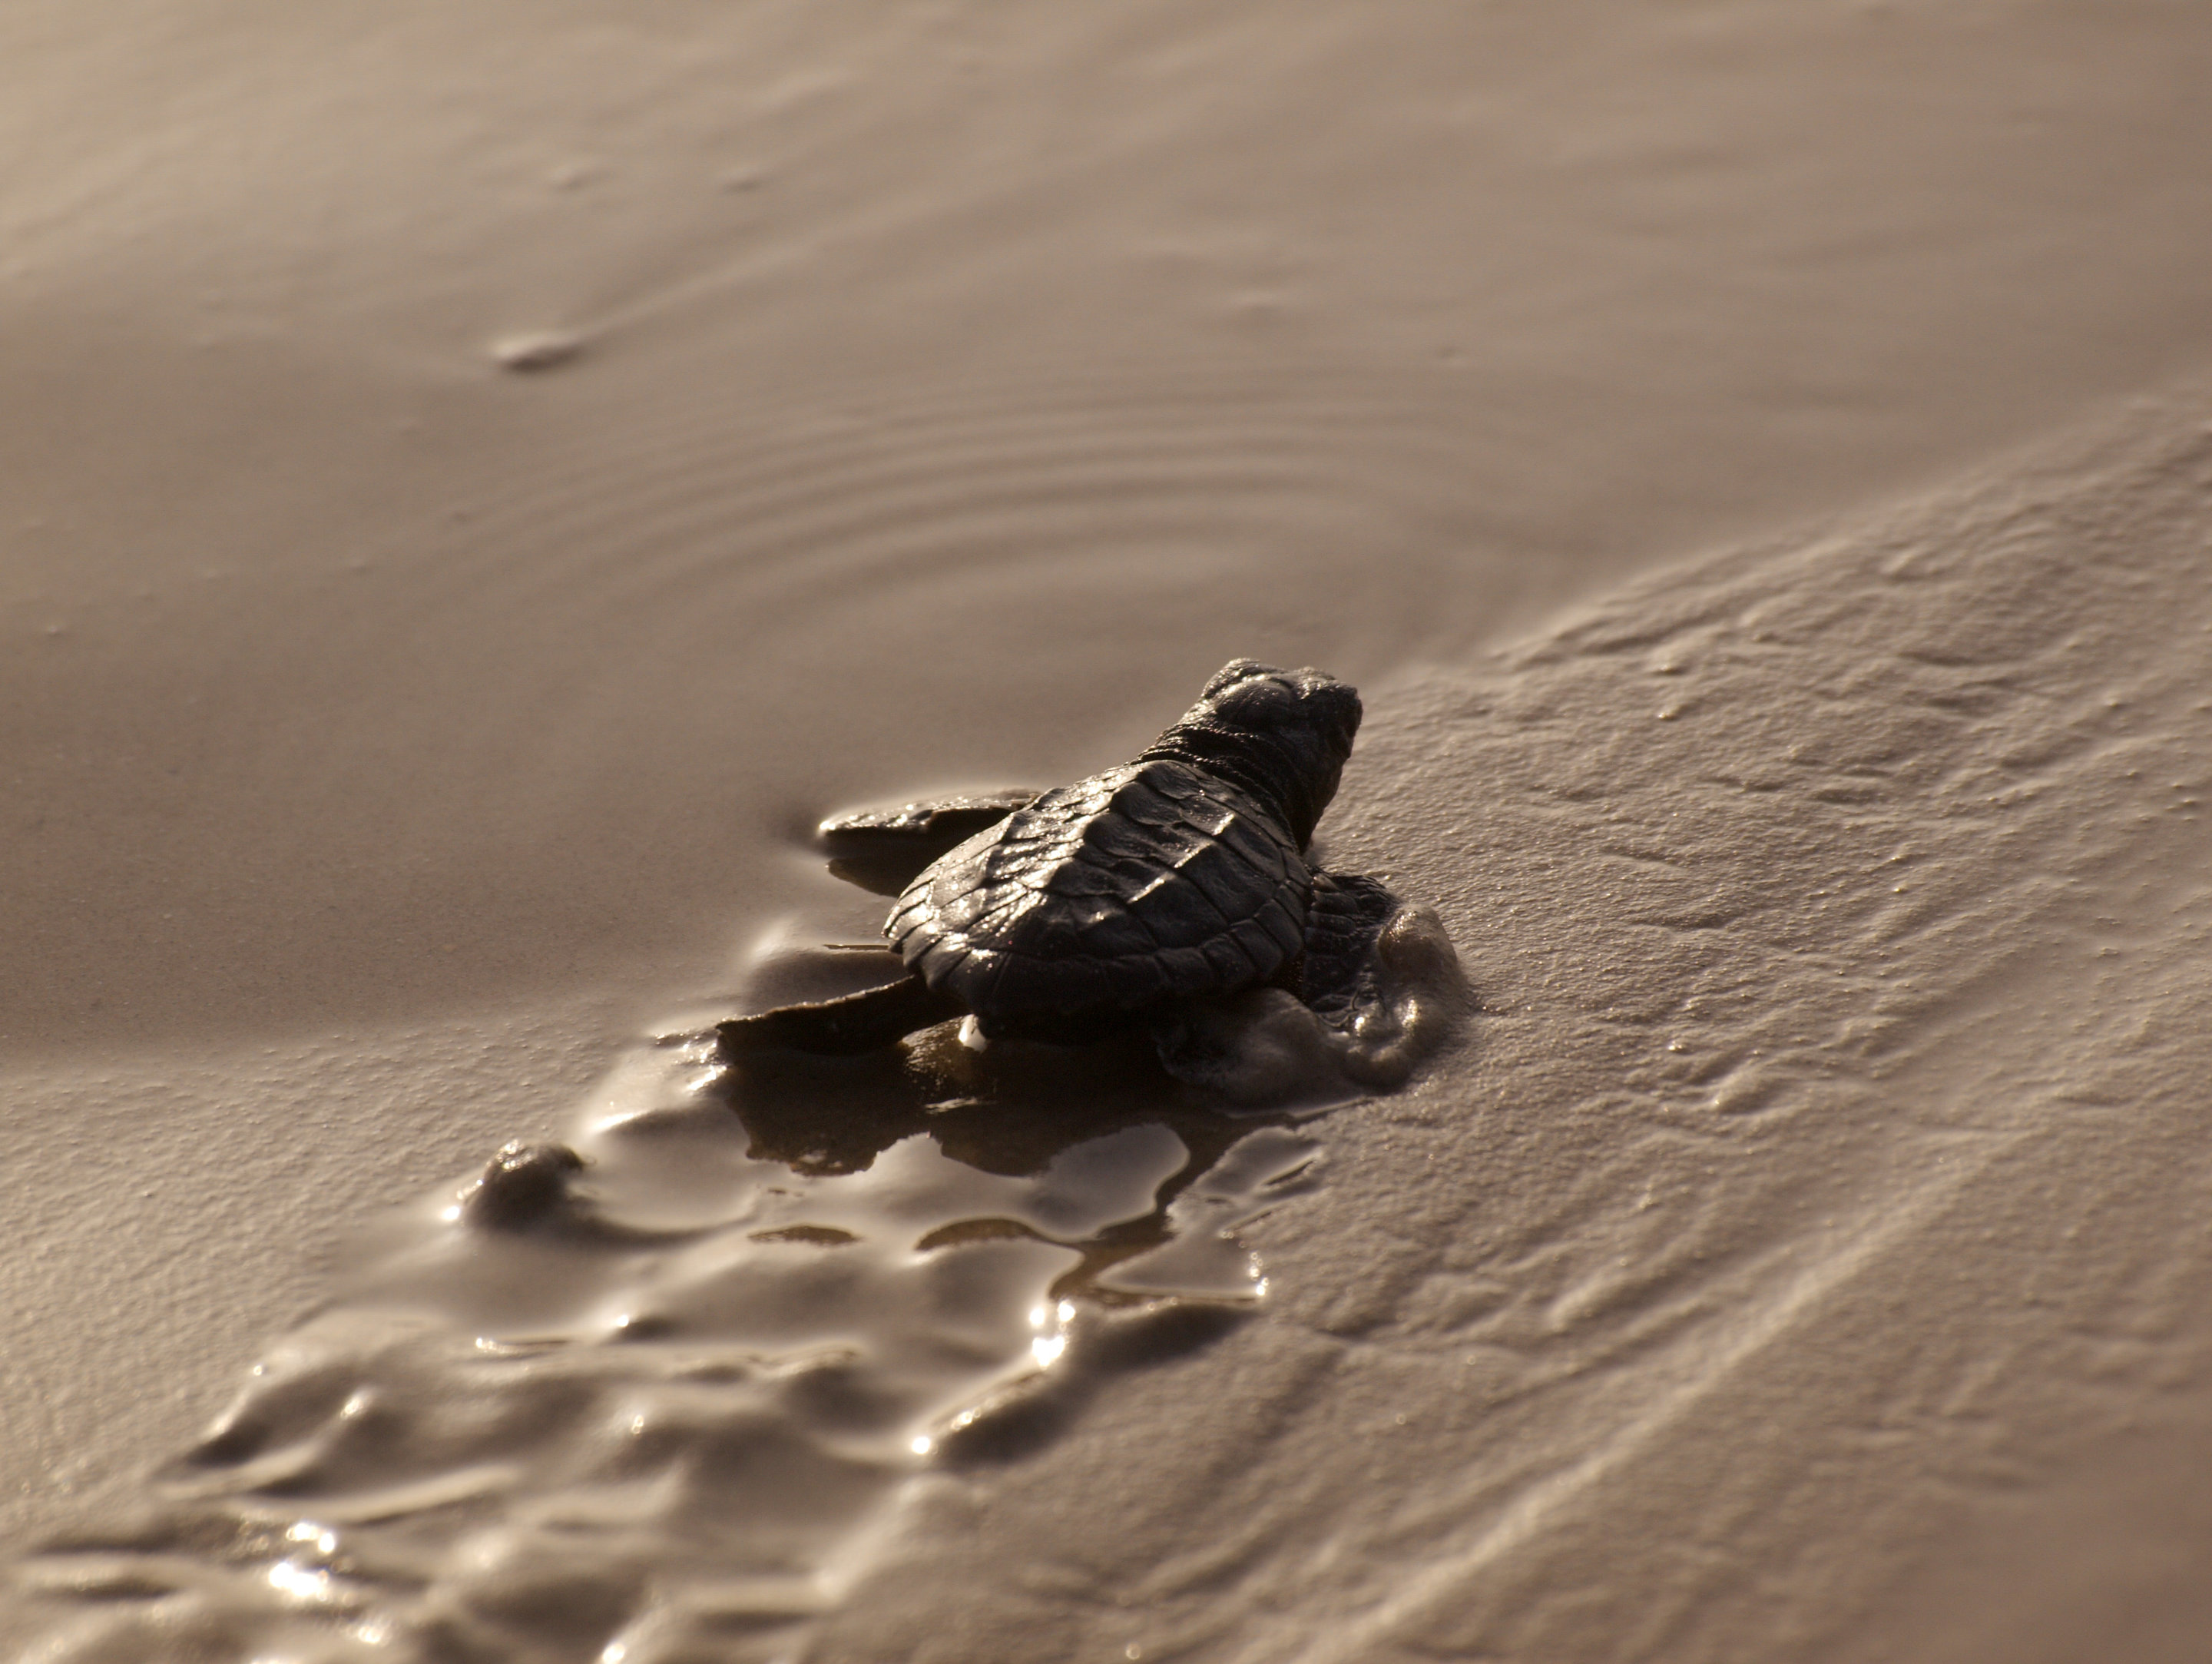 Beaches are becoming safer for baby sea turtles but threats await a kemps ridley hatchling makes its way to the water on padre island texas credit terry ross cc by sa publicscrutiny Gallery